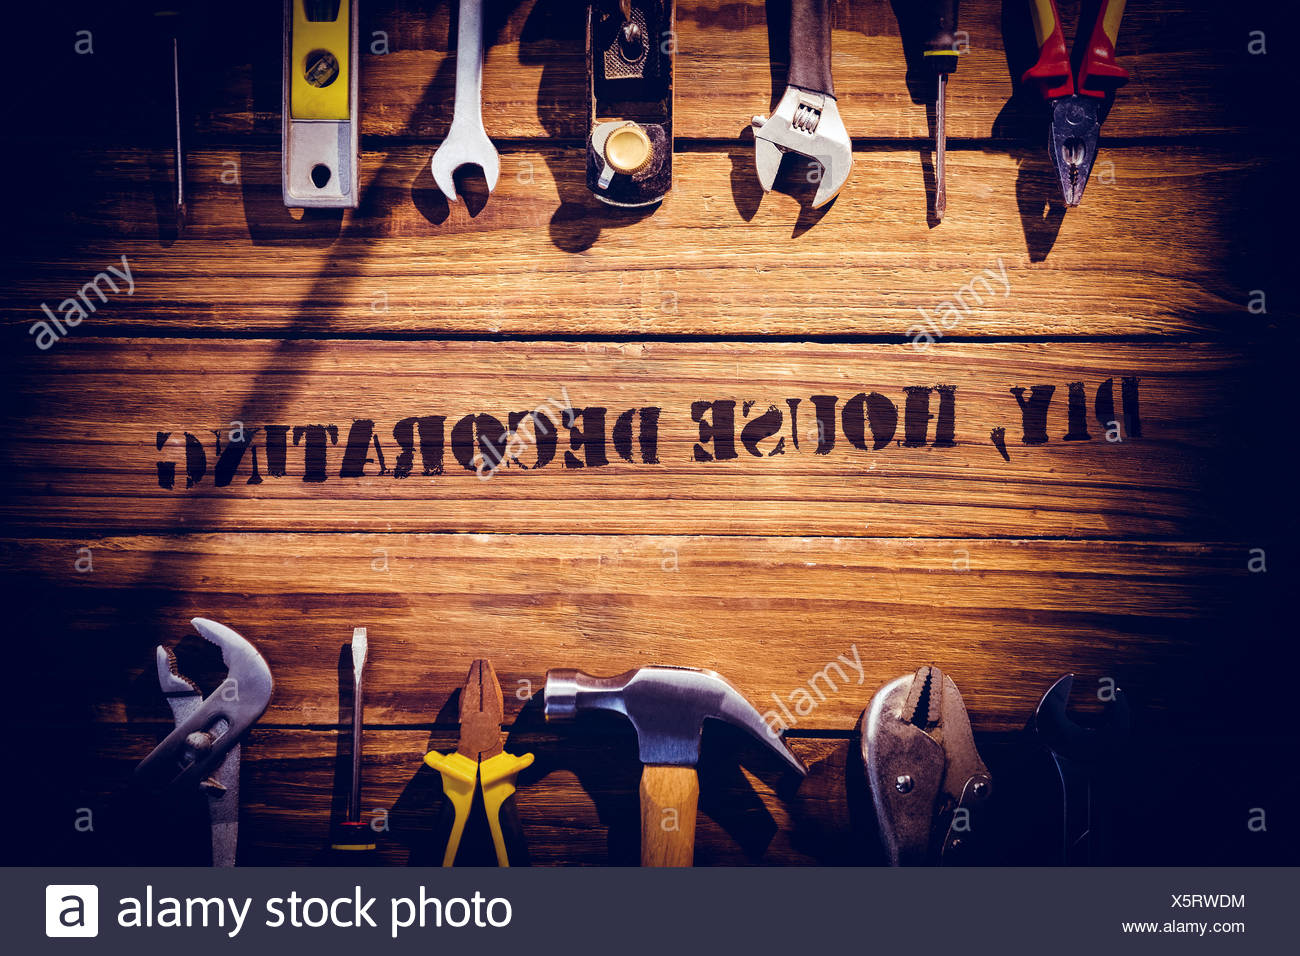 Diy house decorating against desk with tools - Stock Image